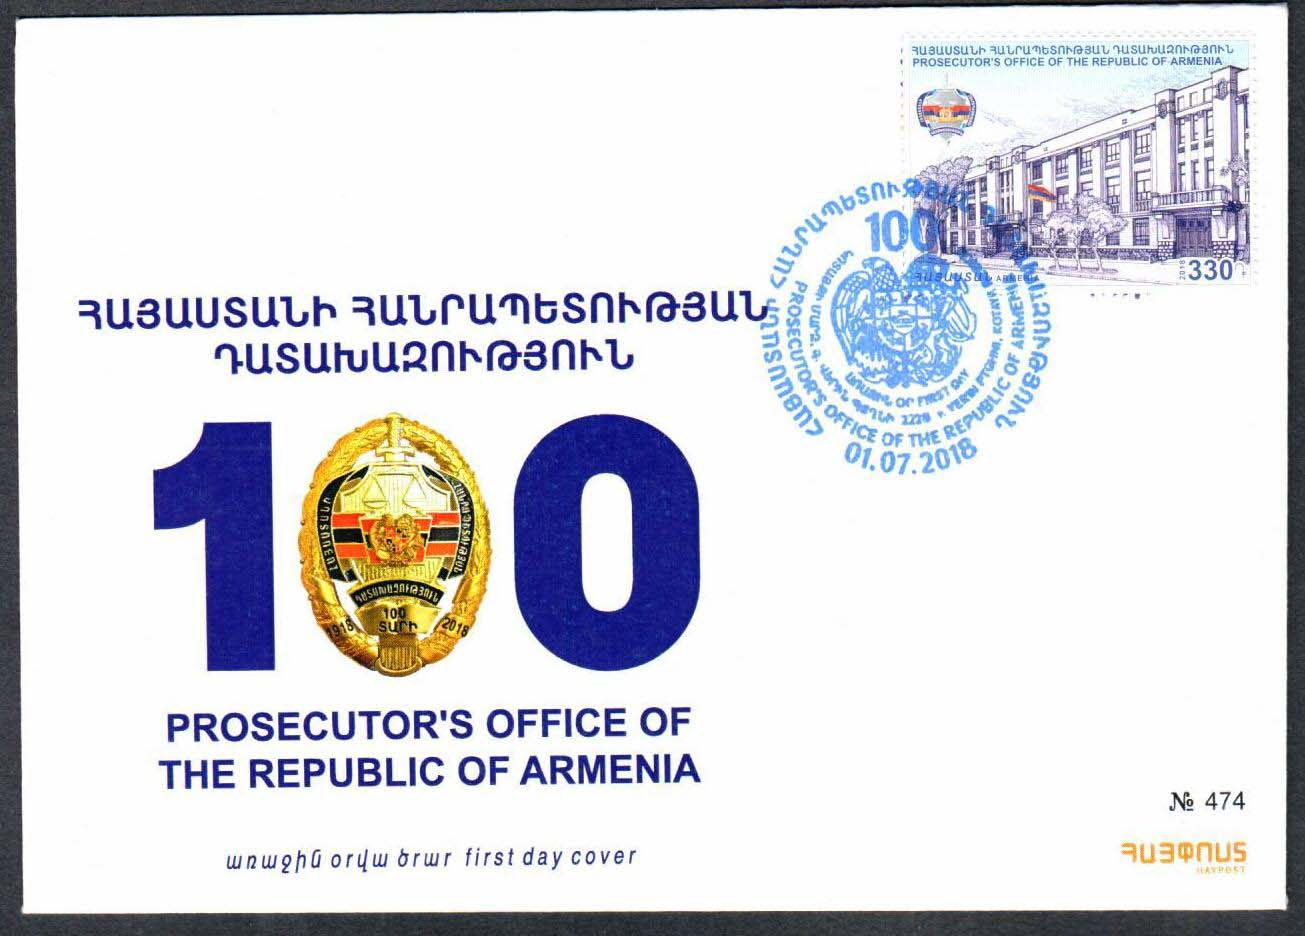 <font =2-854>854, 100th Ann. of the Armenia Prosecutor's Office, FDC, Scott #---- <br>Date of Issue: July 1<br> <a href=&quot;/images/ArmenianStamps-854-FDC.jpg&quot;>   <font color=green><b>View the image</b></a></font>